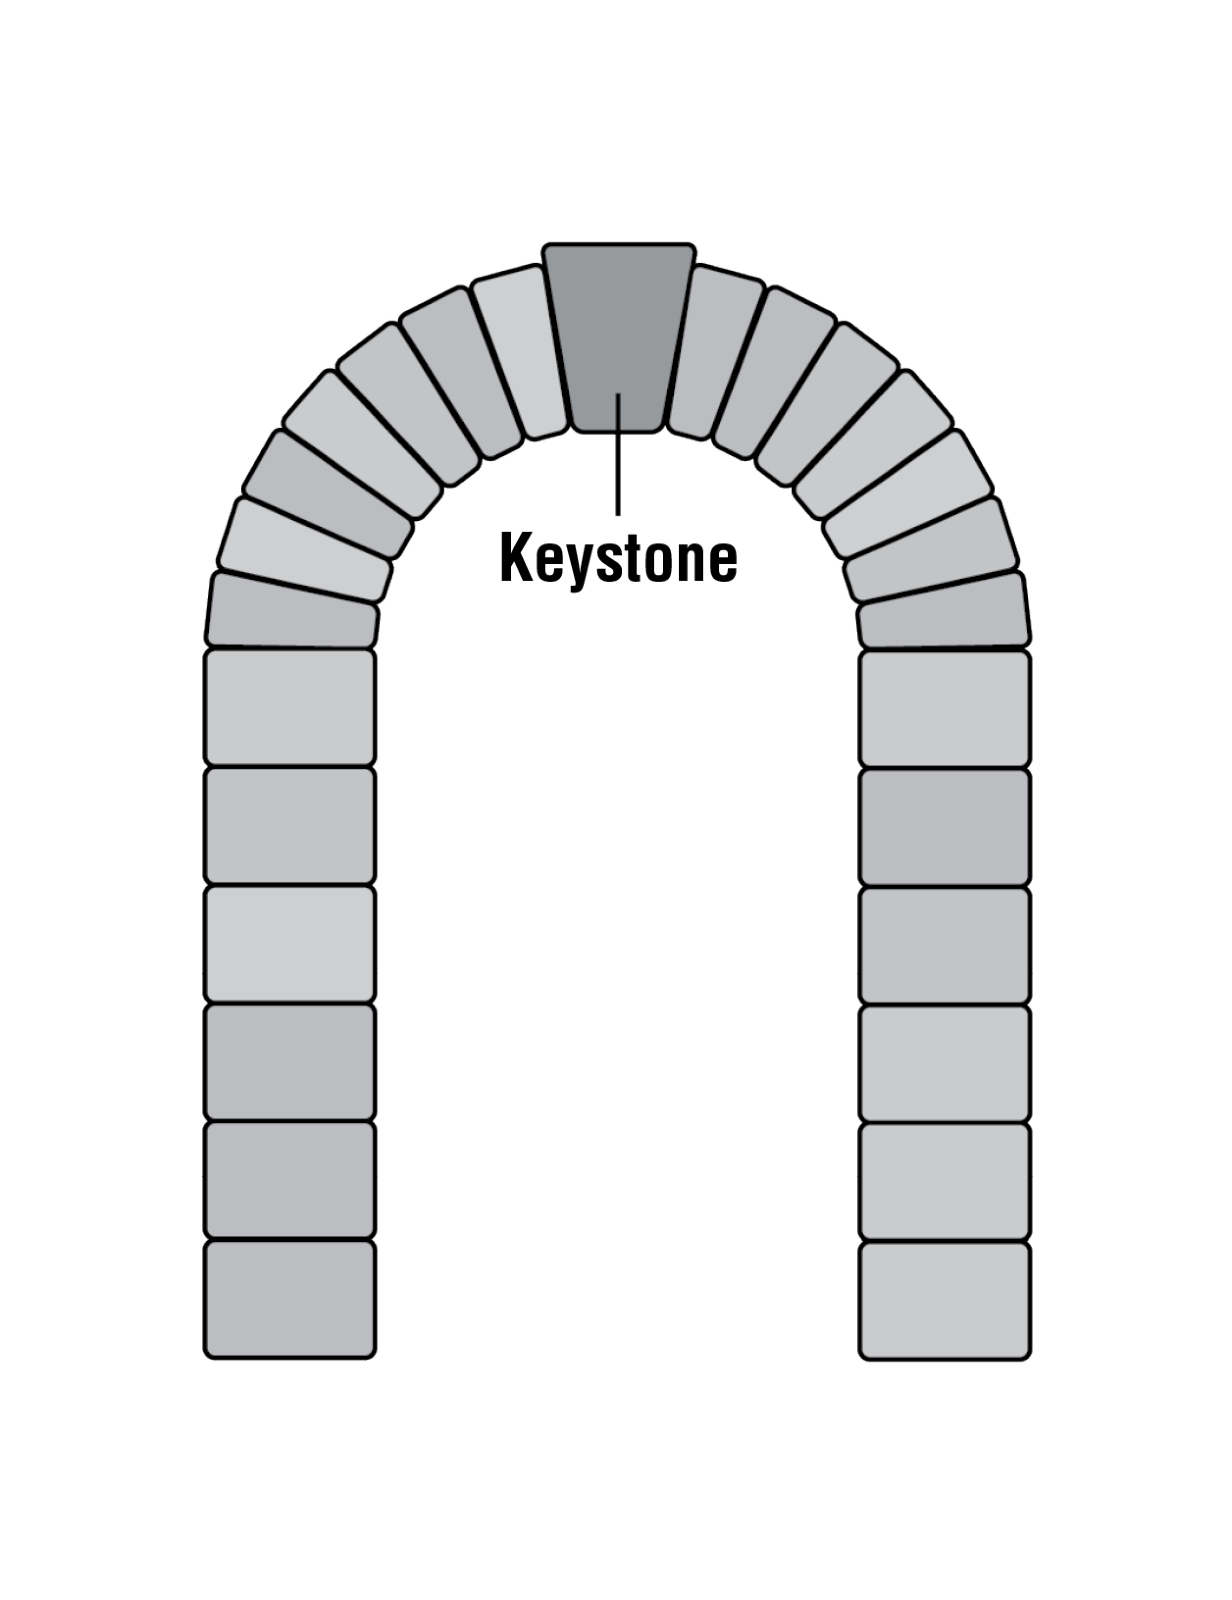 an overview of keystone and the engineering principle of arch Covering structure carried by a system of round arches, built up adopting multiple- leaves  polytechnic university of milan, structural engineering department,  milan, italy  structures of that monument, but a general overview of the  resistance  in the same zones (keystone and the two arch sides) where the  girders of the.